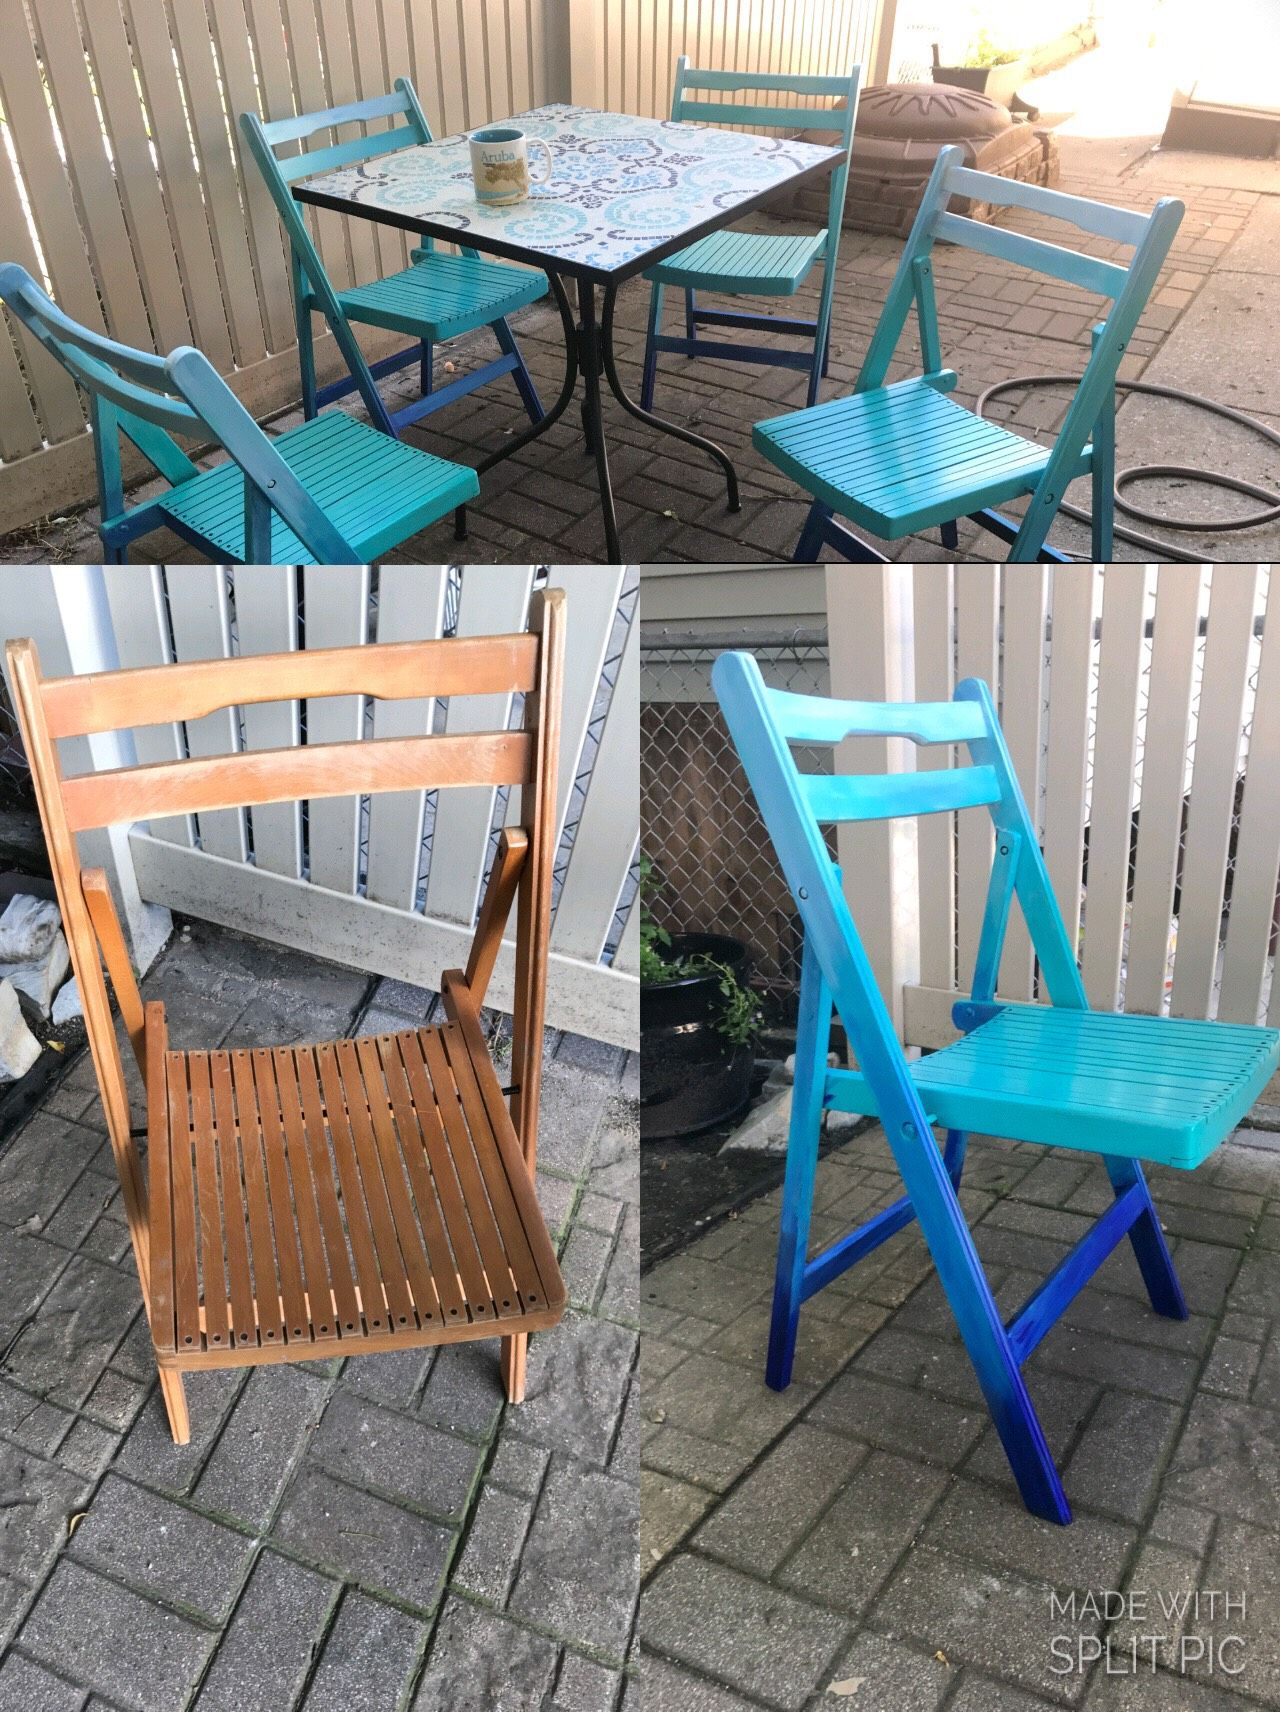 Ombre Patio Furniture Teal Turquoise To Royal Blue Outdoor Chairs Furniture Home Decor